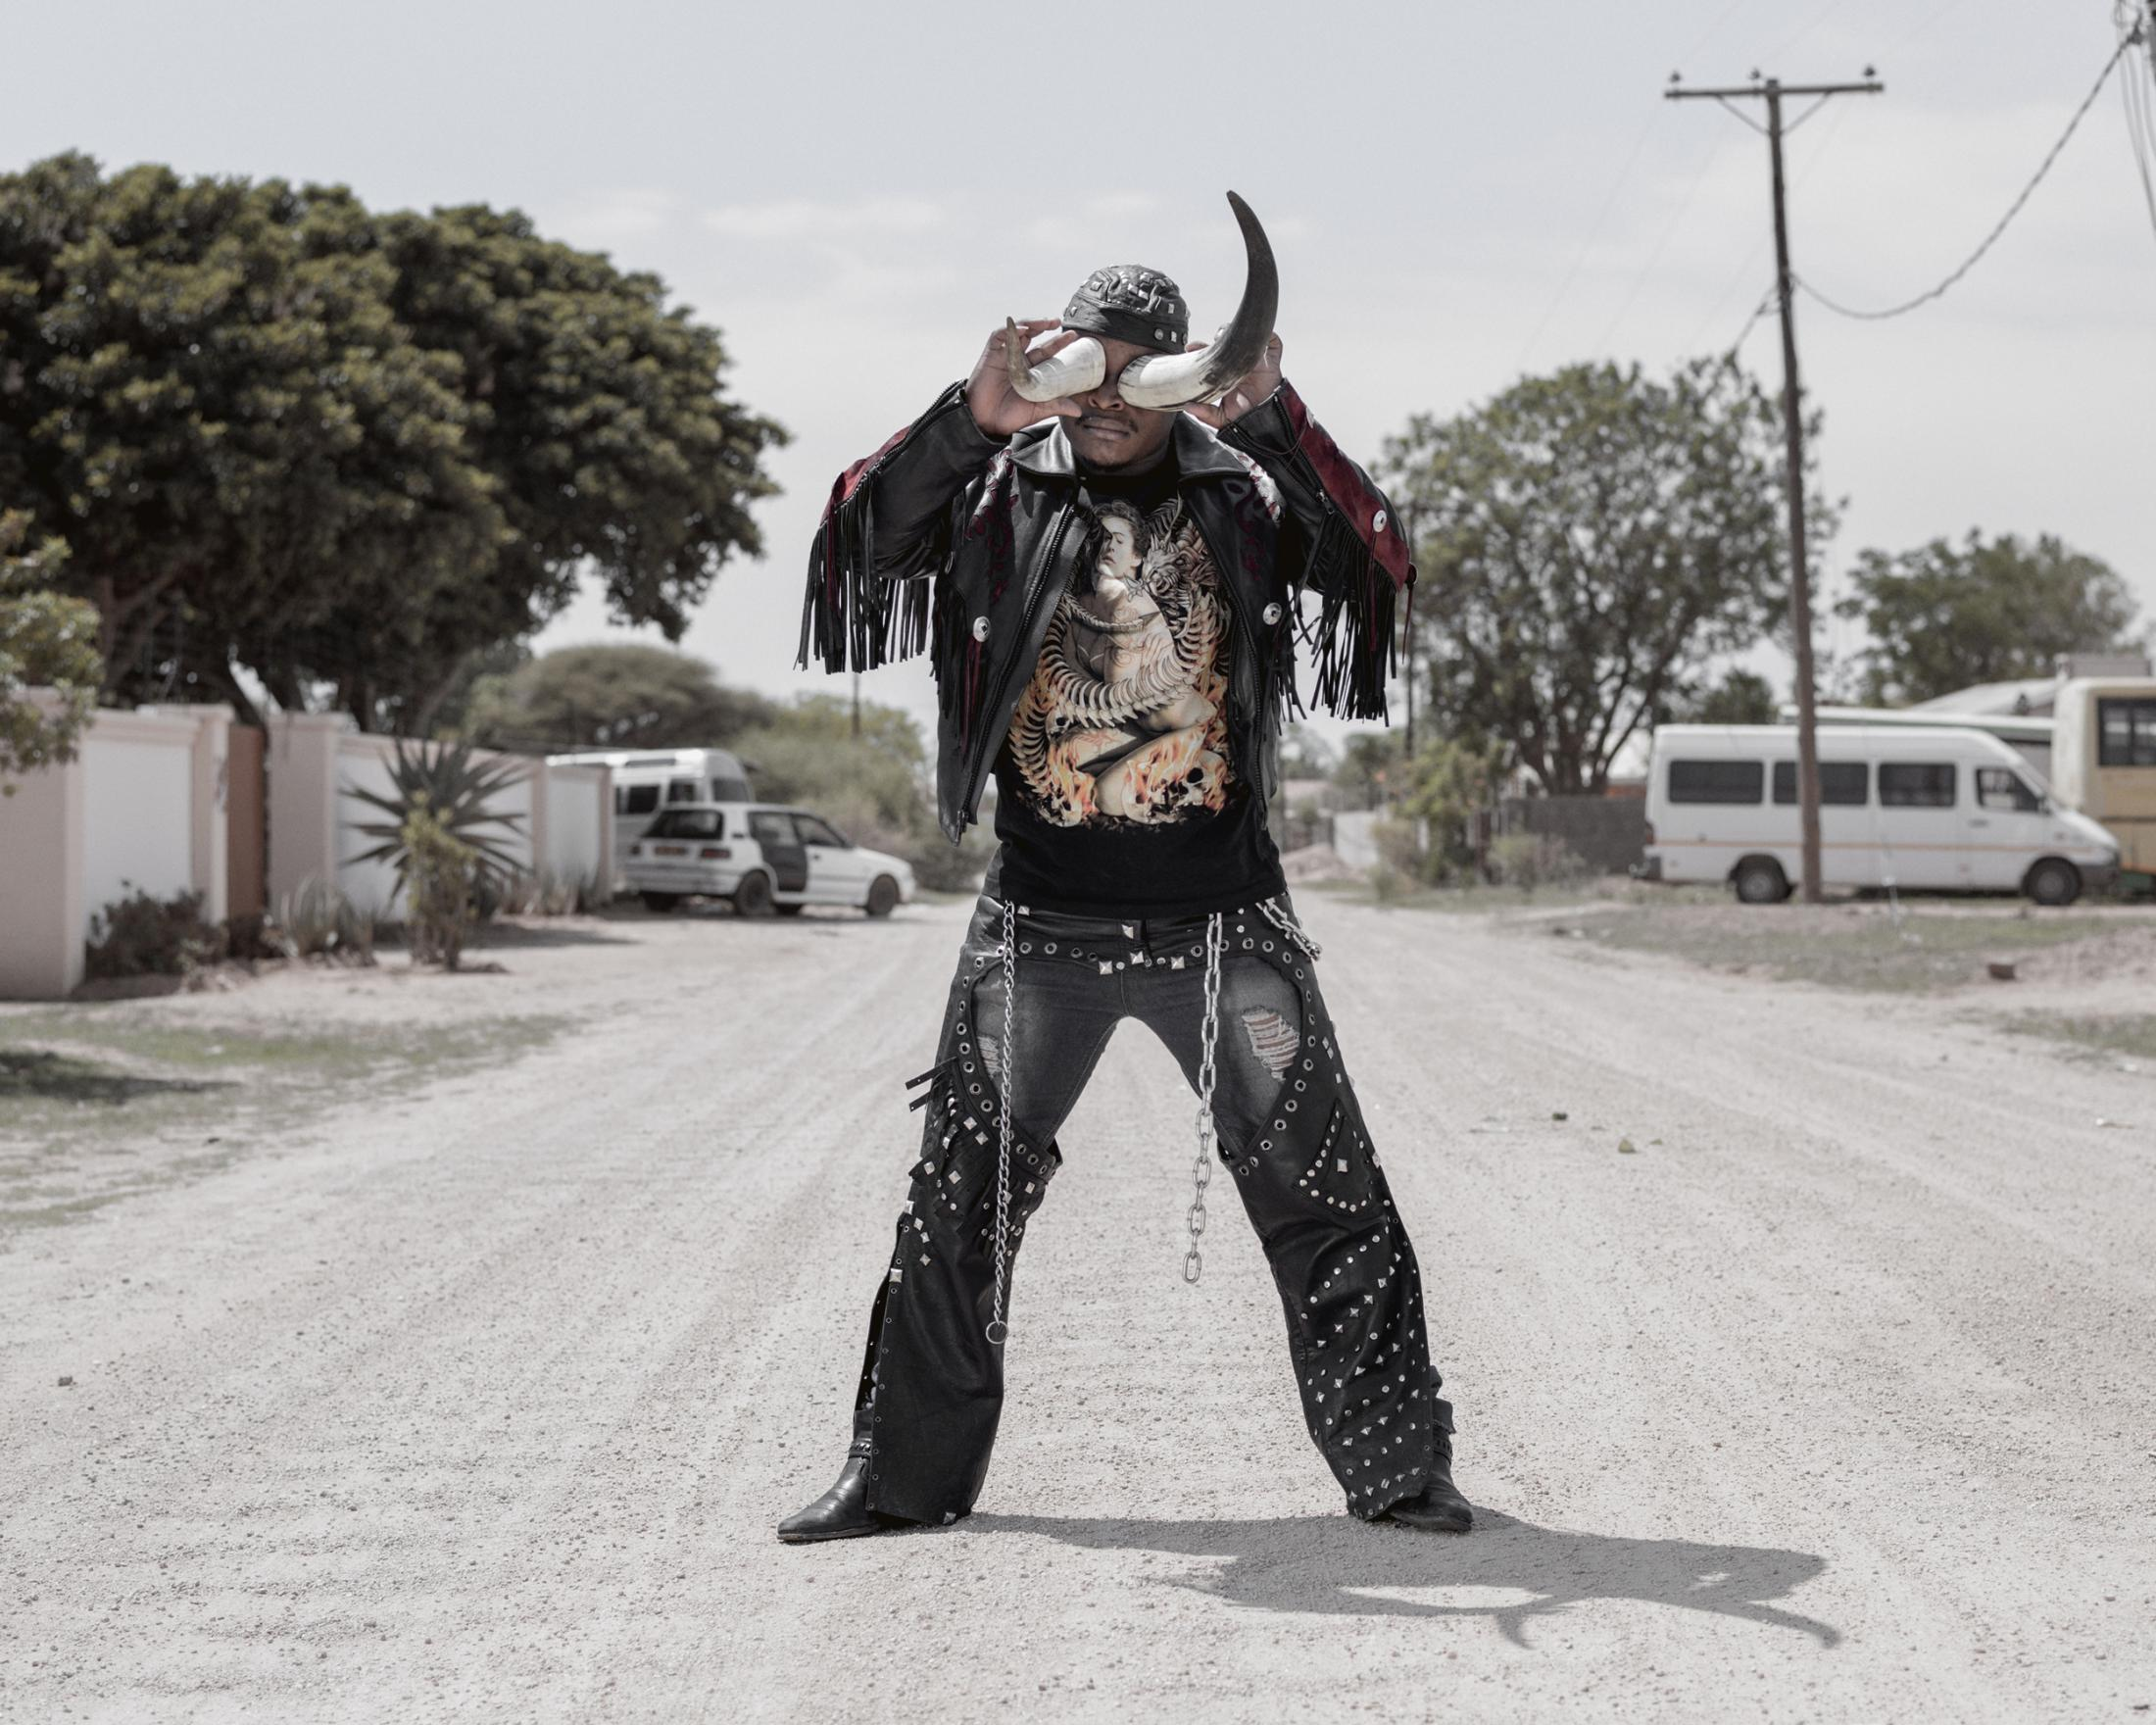 "Africa, Botswana, Gaborone, December 2015 Photo by Pep Bonet / NOOR Portrait of 27 years old ""Cybok"" I work as a security guard, I started listening to heavy metal in 2008, I liked the way the metal heads dressed and behaved so I started associating myself with them and I became a rocker, I like Skinflint, I'm new in the Industry."